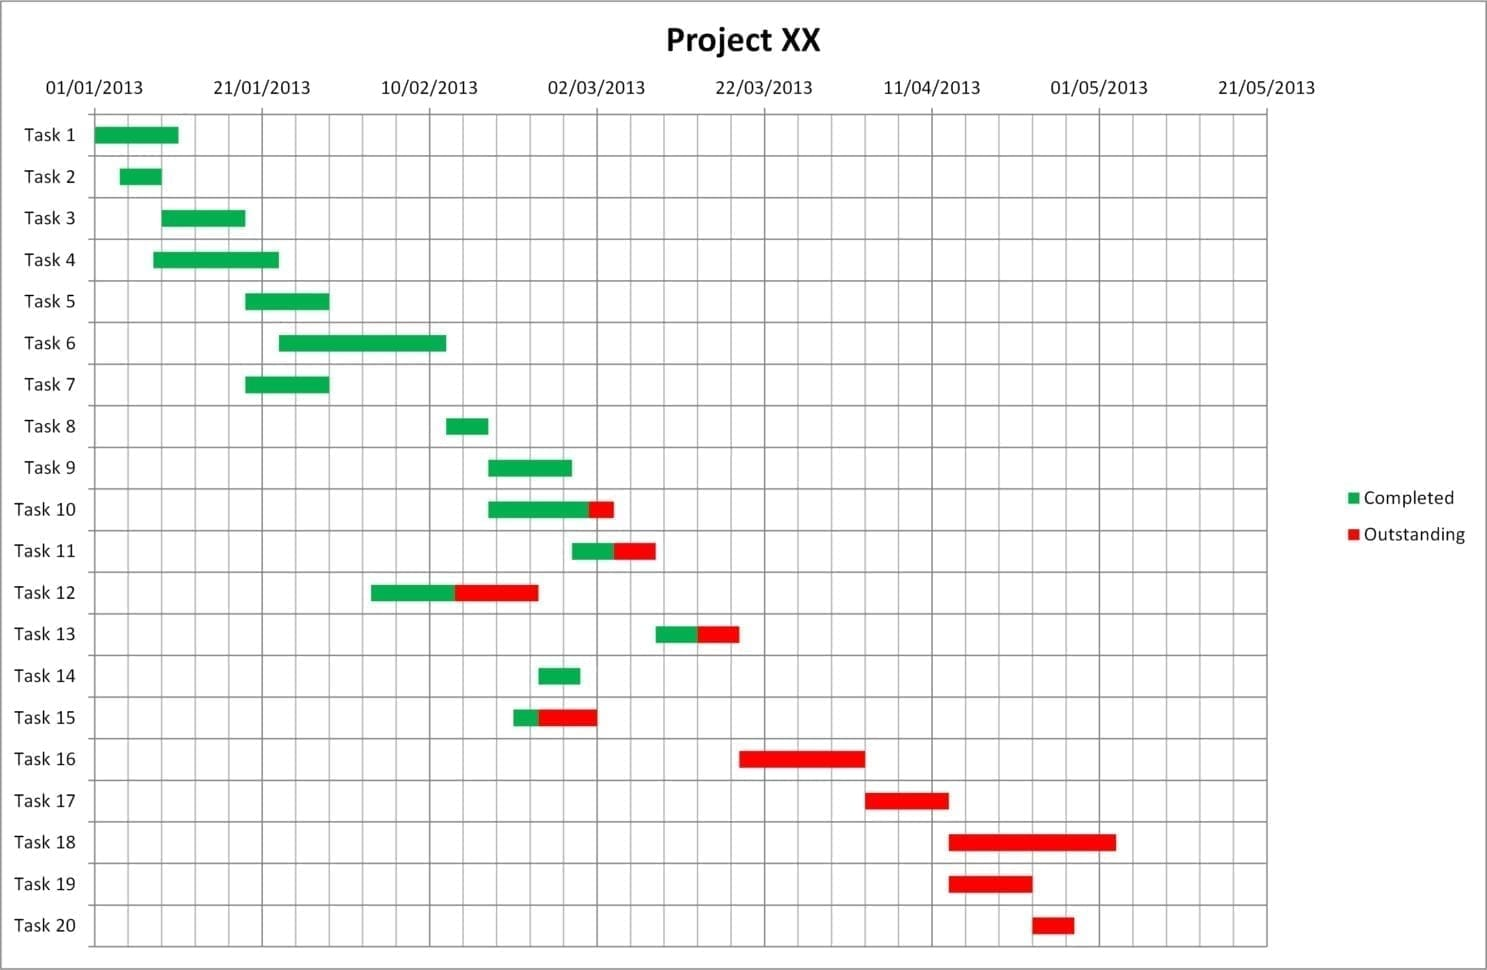 Gantt Chart Excel Template 2013 Excel 2010 Gantt Chart Template Gantt Chart Excel 2010 Download Gantt Spreadsheet Excel Sample Excel Gantt Chart Template Conditional Formatting Excel Gantt Chart Template With Dependencies Free Gantt Chart Template Excel 2013  Gantt Chart Template Microsoft Office Excel Spreadsheet Gantt Chart Template Spreadsheet Templates for Busines